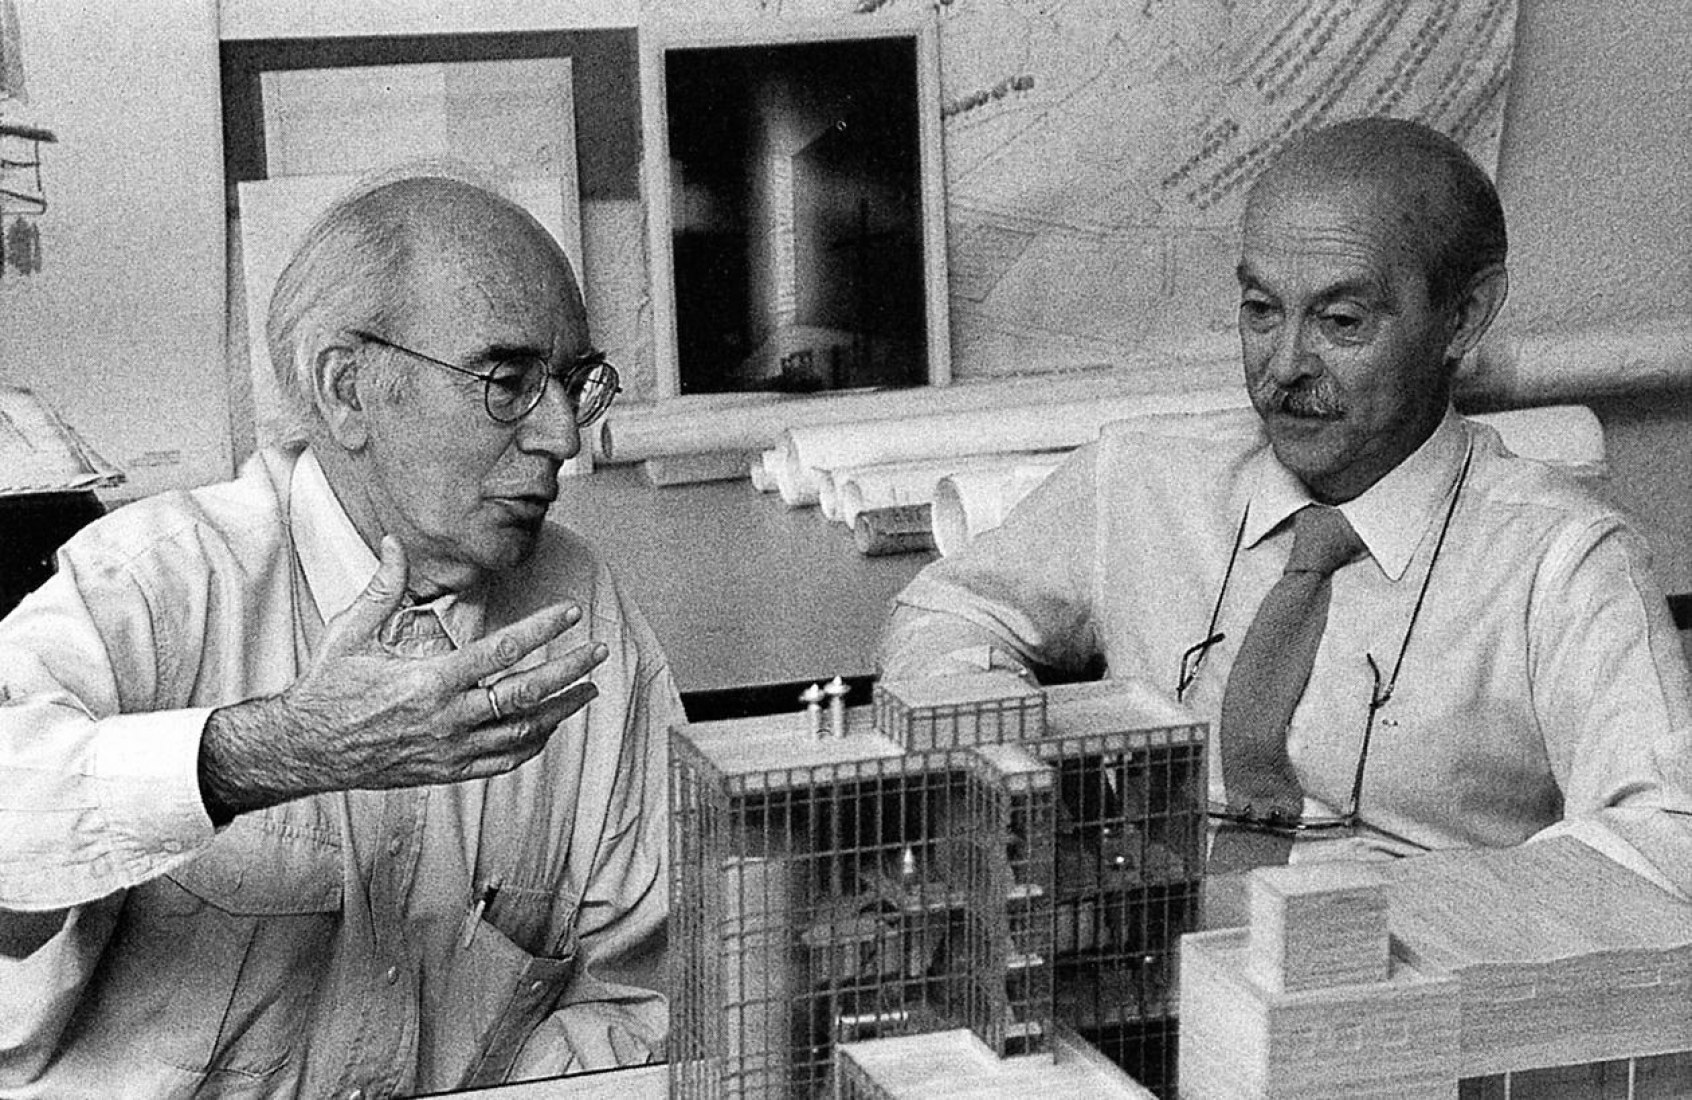 Genaro Alas (right) and Pedro Casariego in their studio. Photograph by D.R.